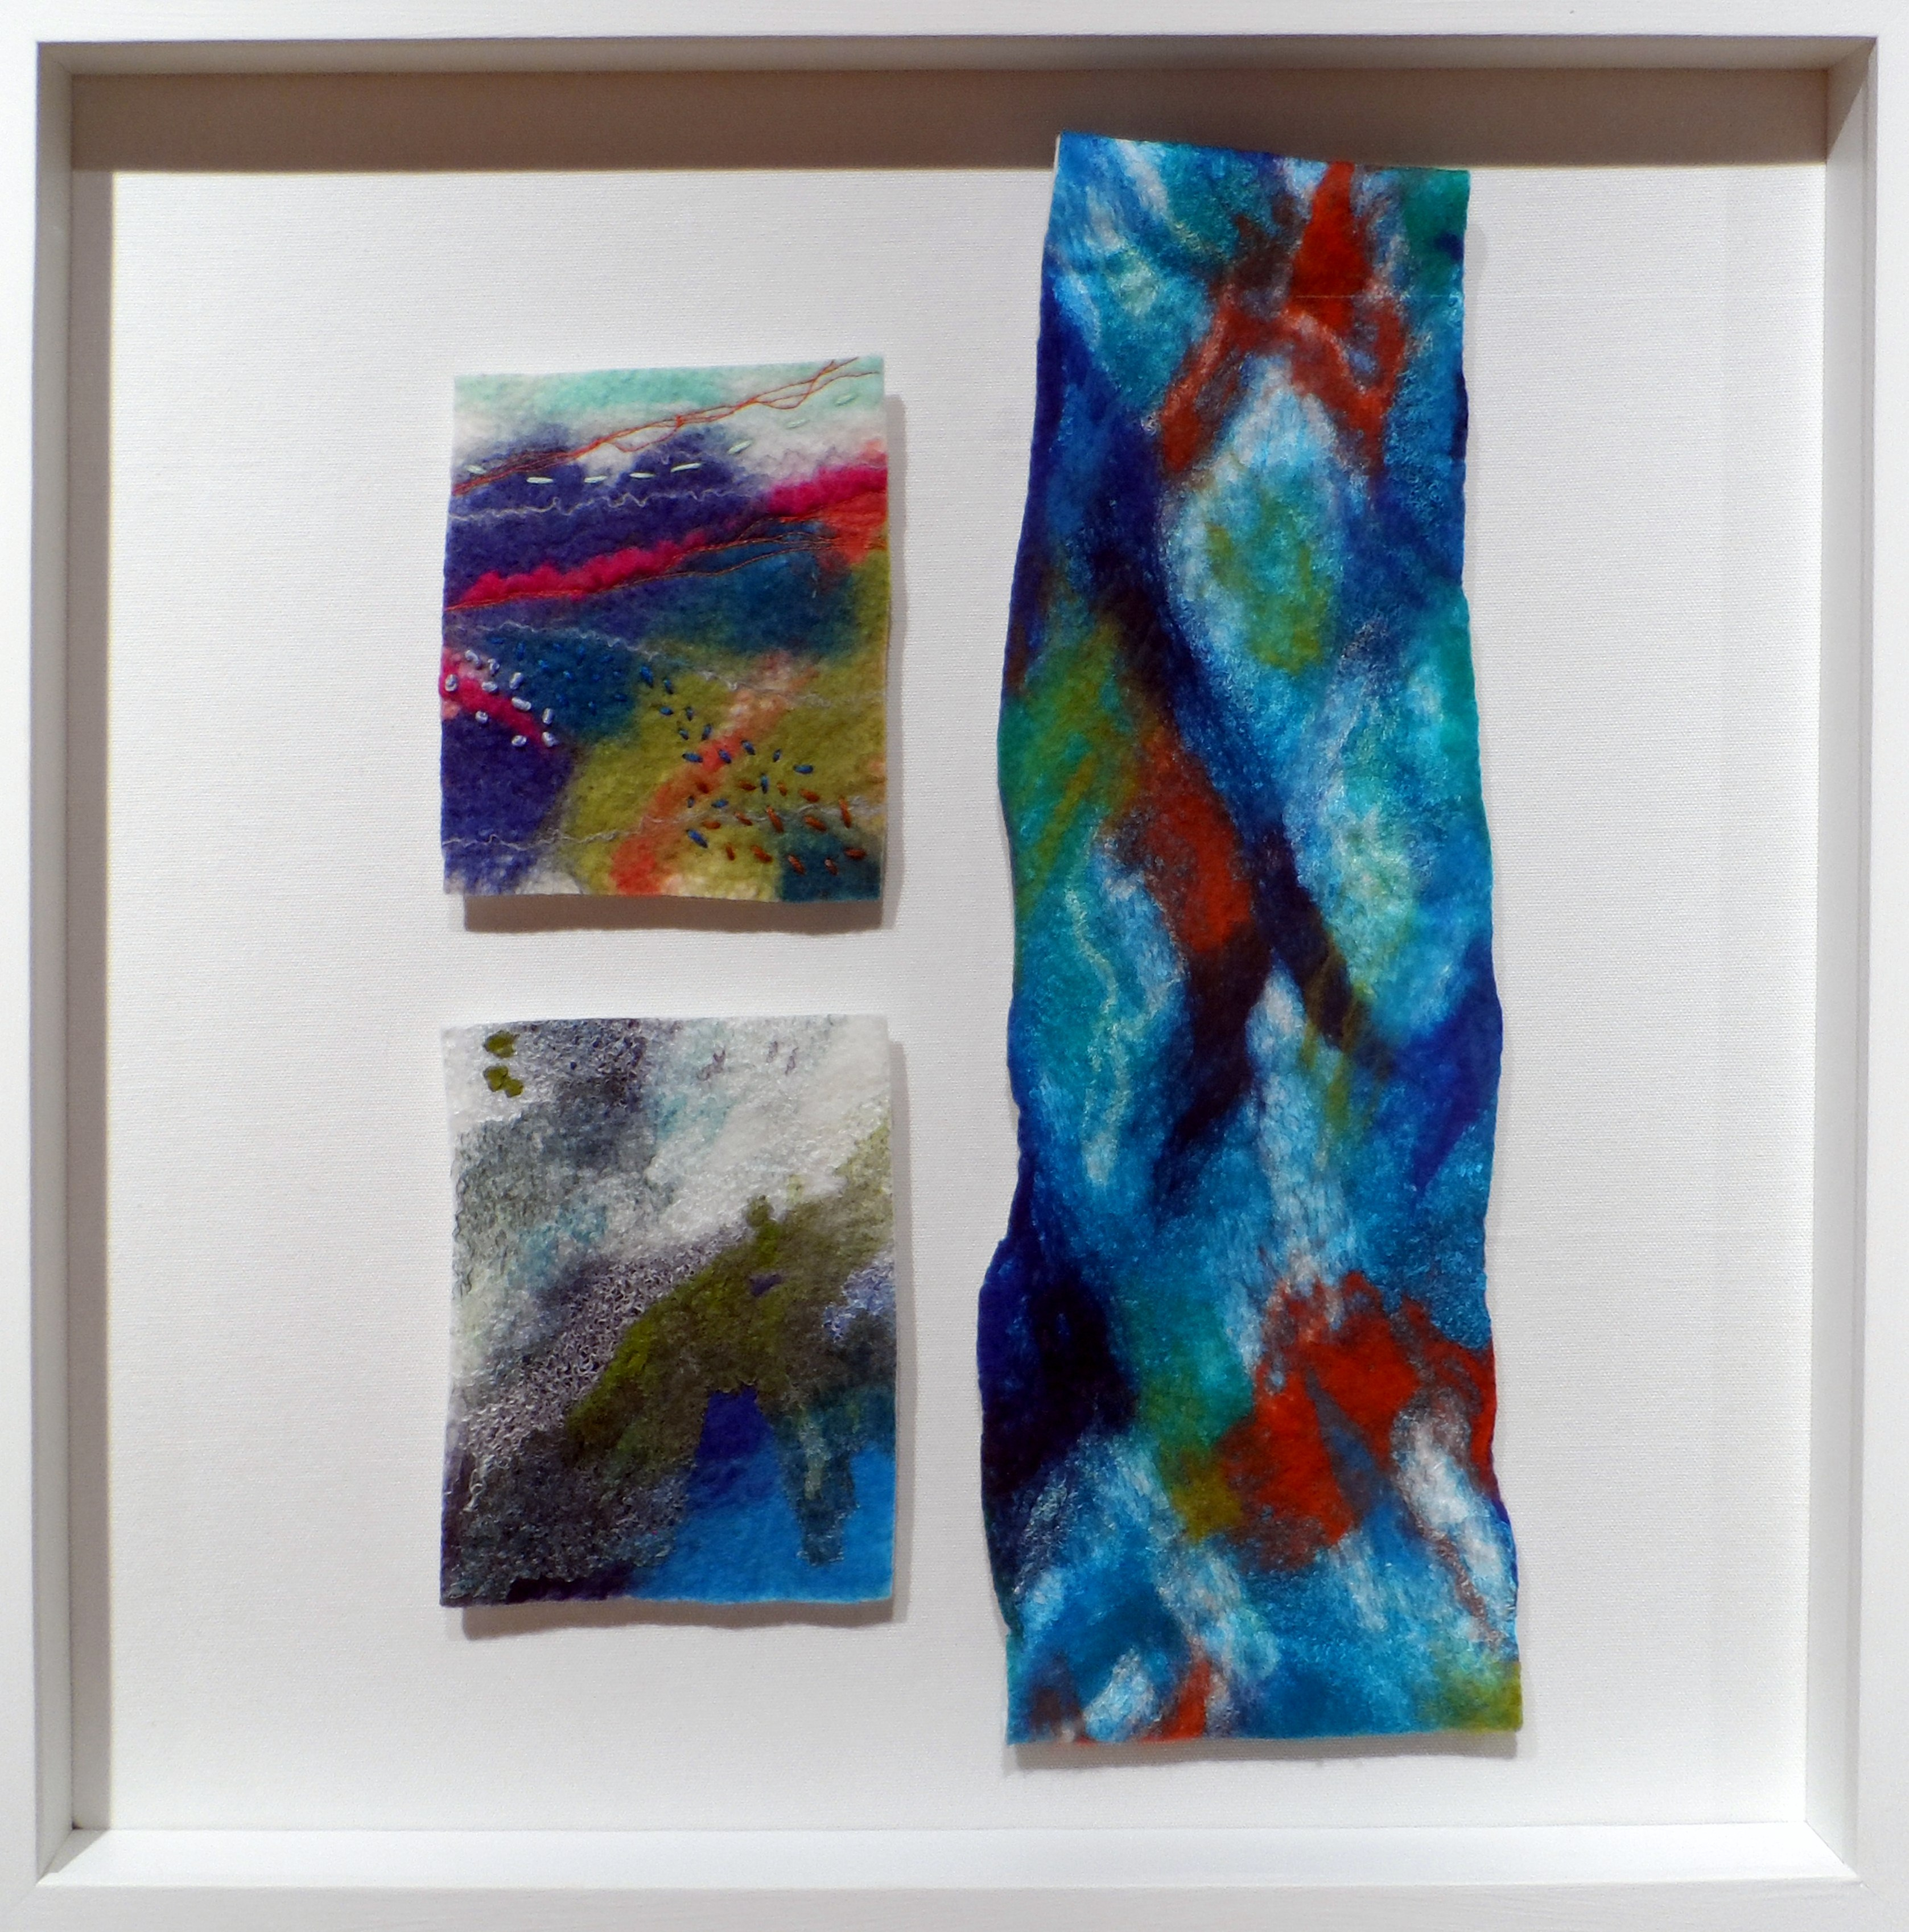 UNTITLED A by Cath Carmyllie, felted stitched, dyed, printed textiles, Re-View Textile exhibition, Nov 2019